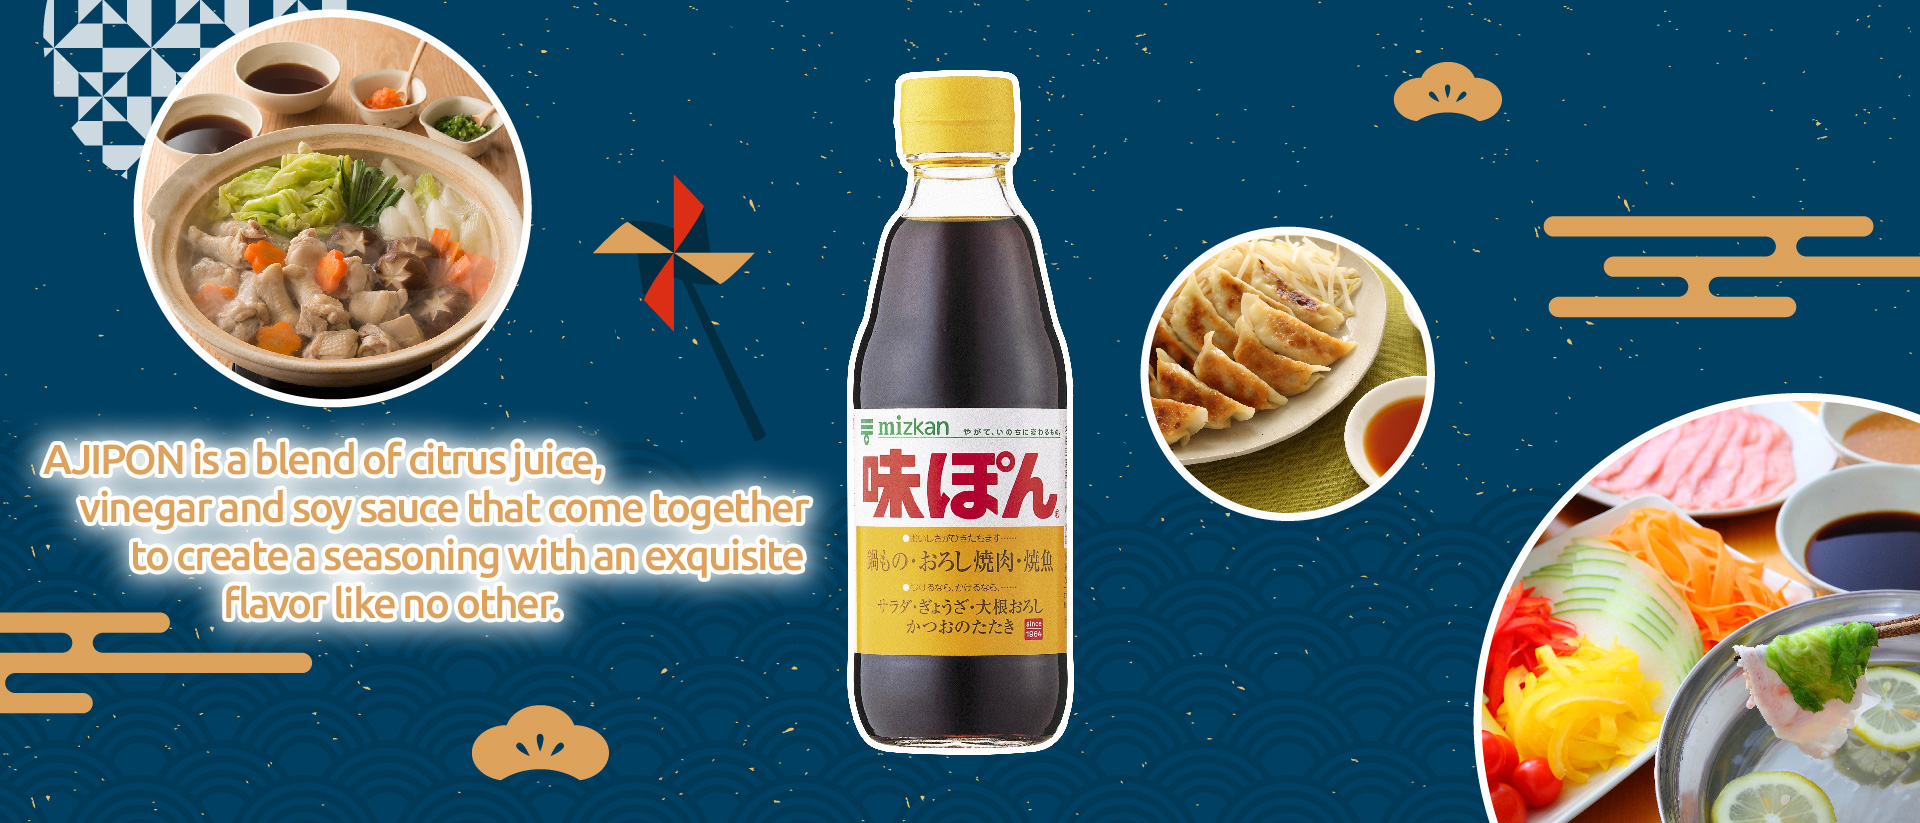 What kind of seasoning is AJIPON? AJIPON is a blend of citrus juice, vinegar and soy sauce that come together to create a seasoning with an exquisite flavor like no other.